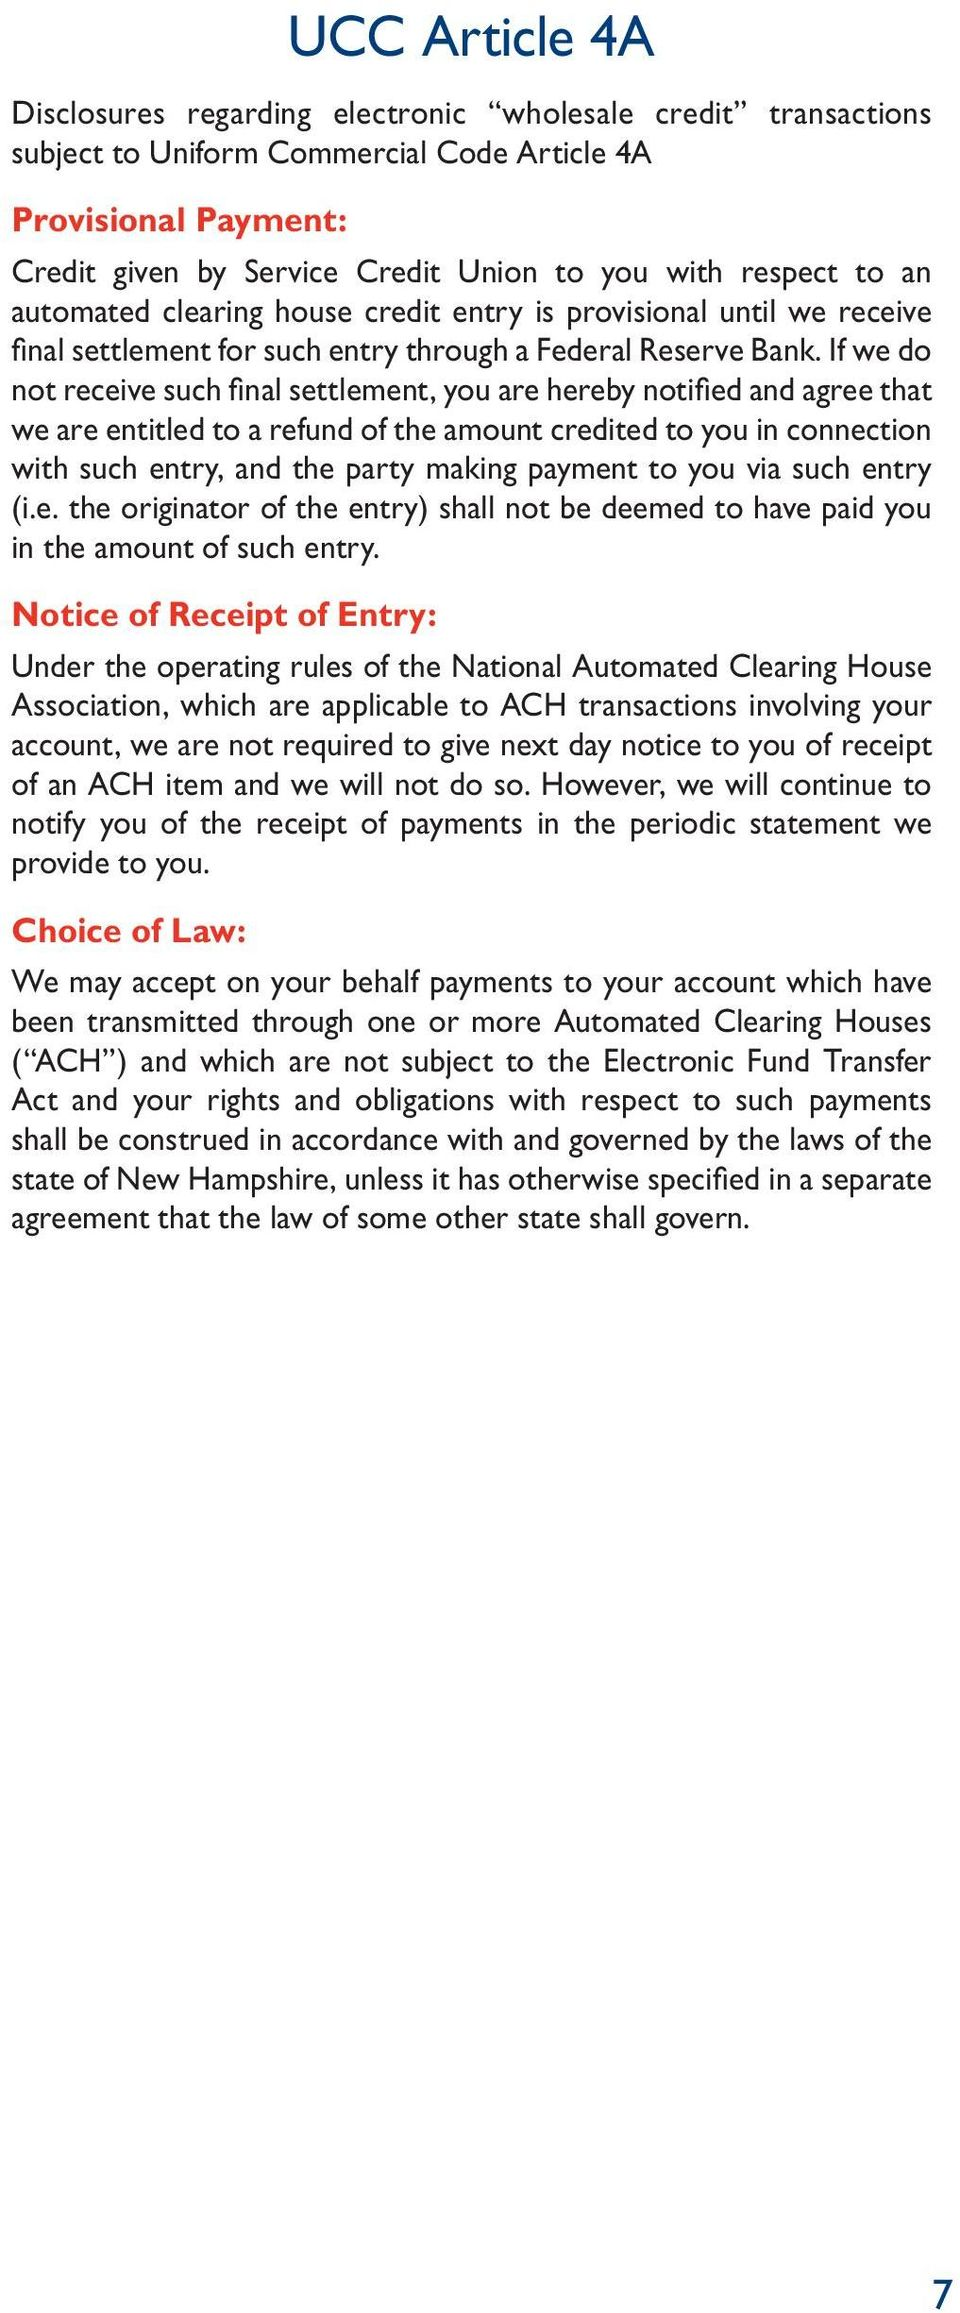 If we do not receive such final settlement, you are hereby notified and agree that we are entitled to a refund of the amount credited to you in connection with such entry, and the party making